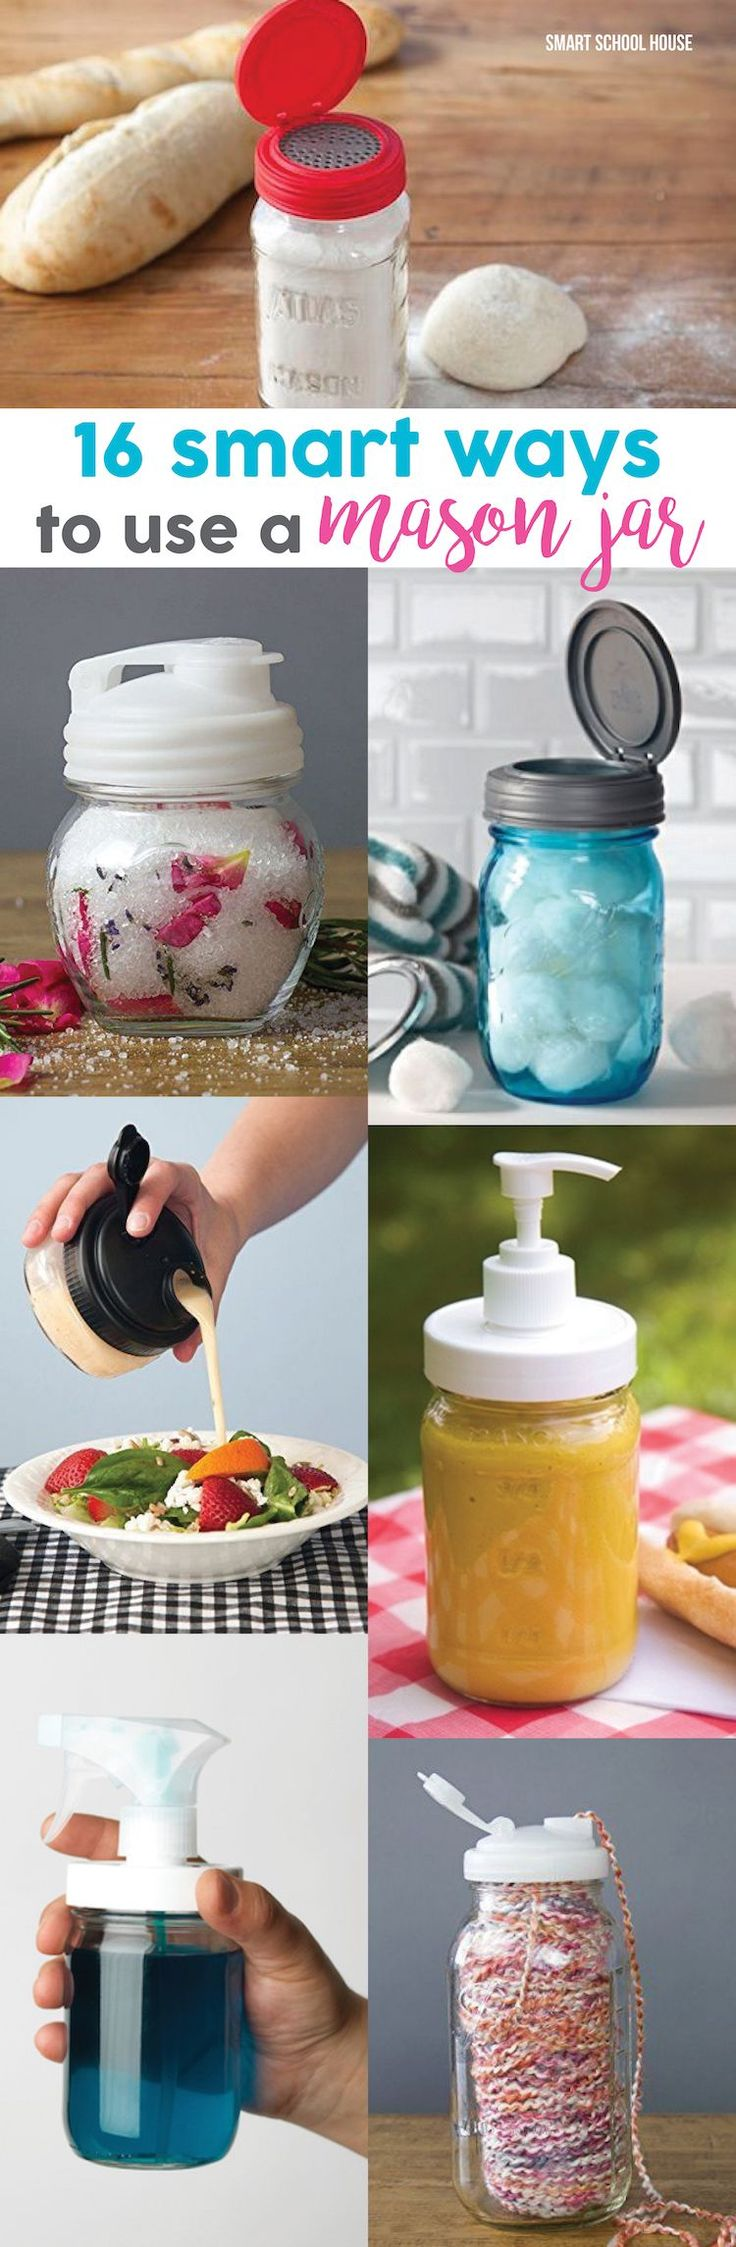 Crafts With Mason Jars Best 20 Mason Jar Lids Ideas On Pinterest Jar Lid Crafts Mason